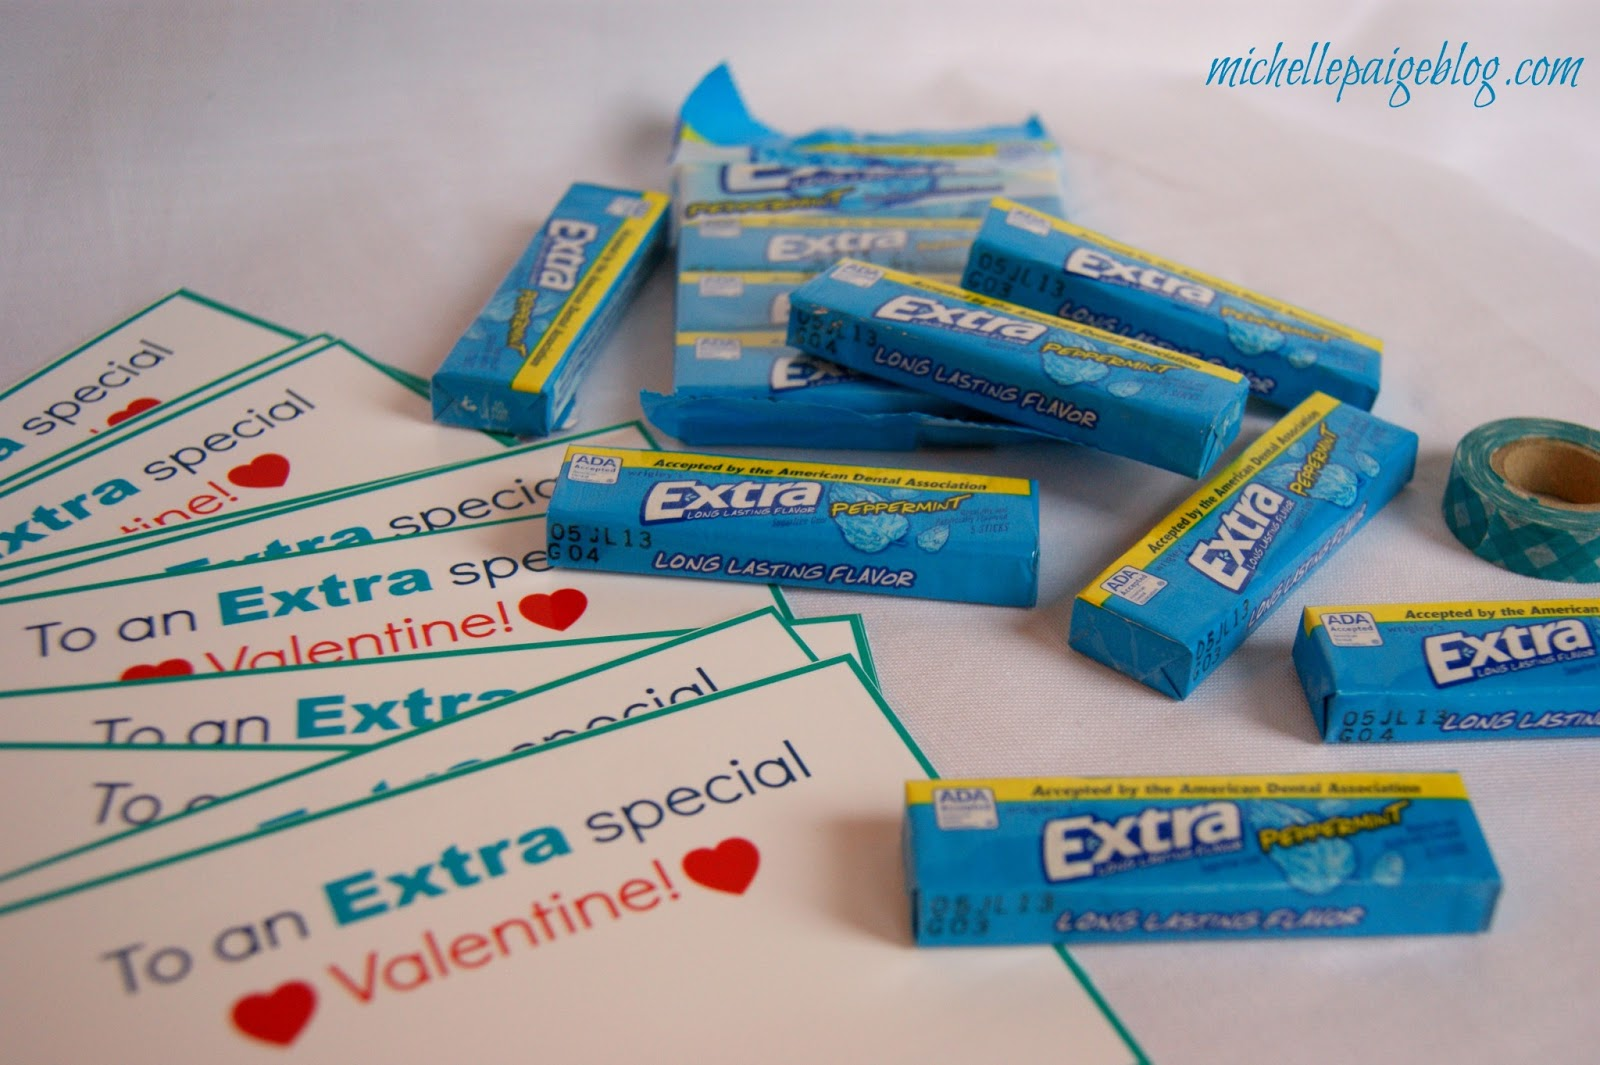 image regarding Extra Gum Valentine Printable known as mice paige weblogs: Much more Exceptional Valentines